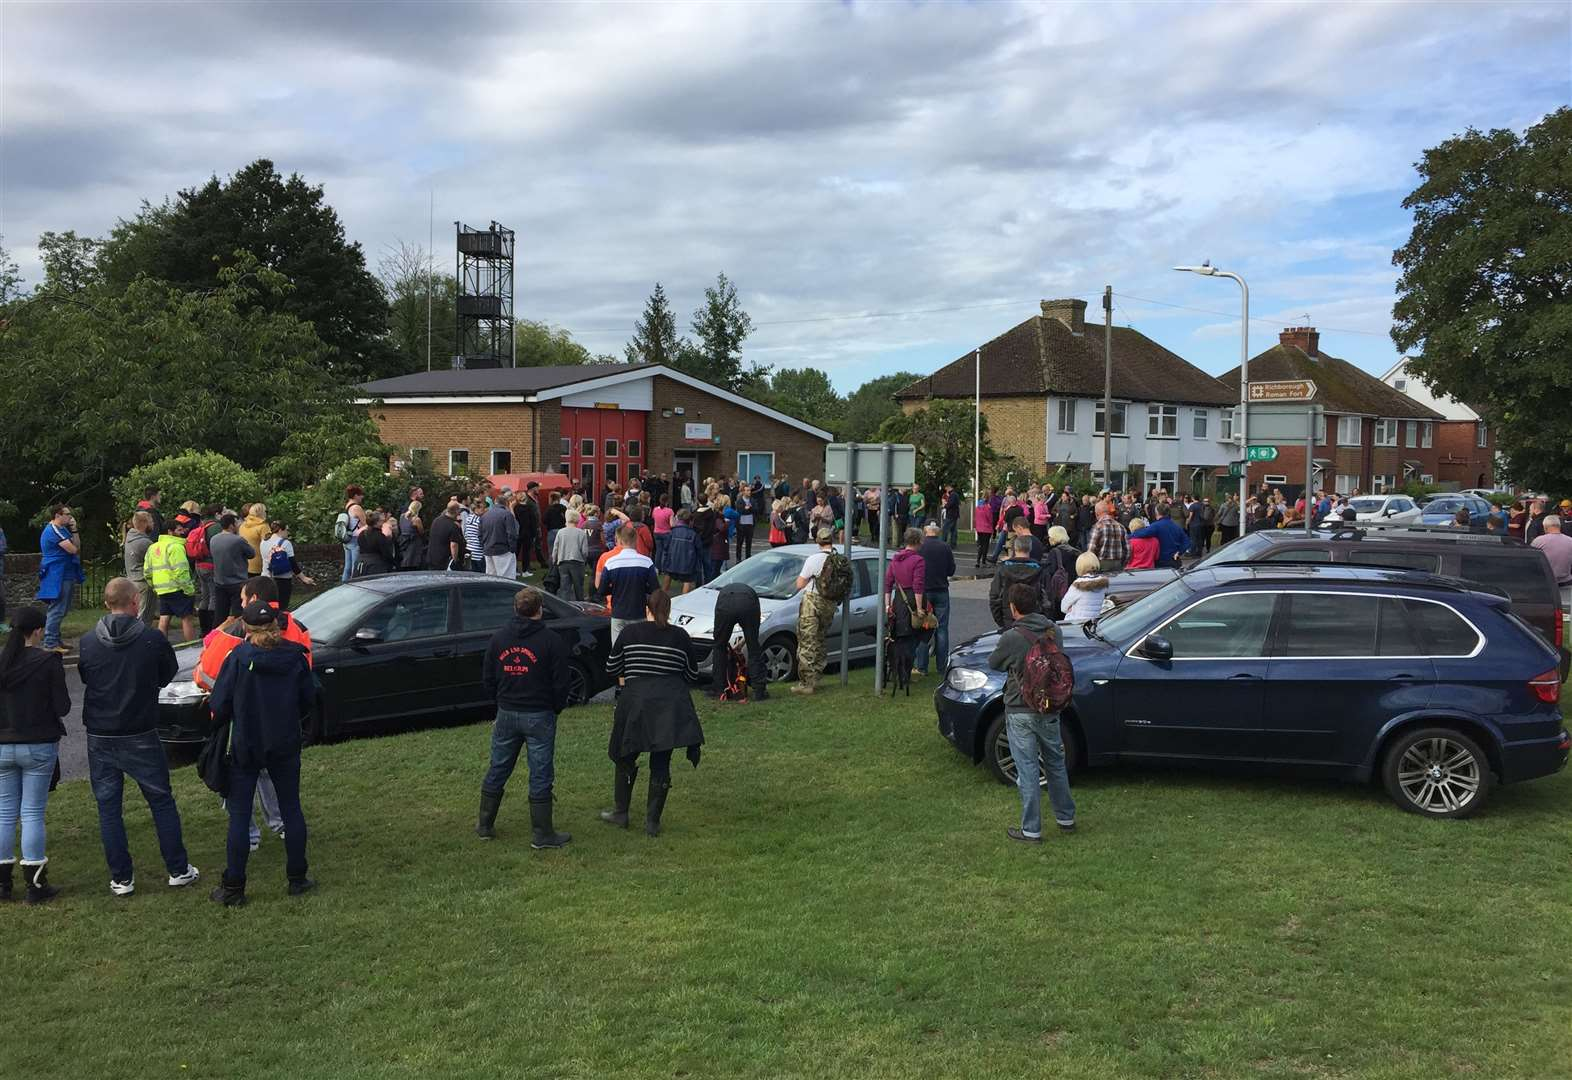 Crowds gathered the morning after Lucas Dobson went missing to help search for him